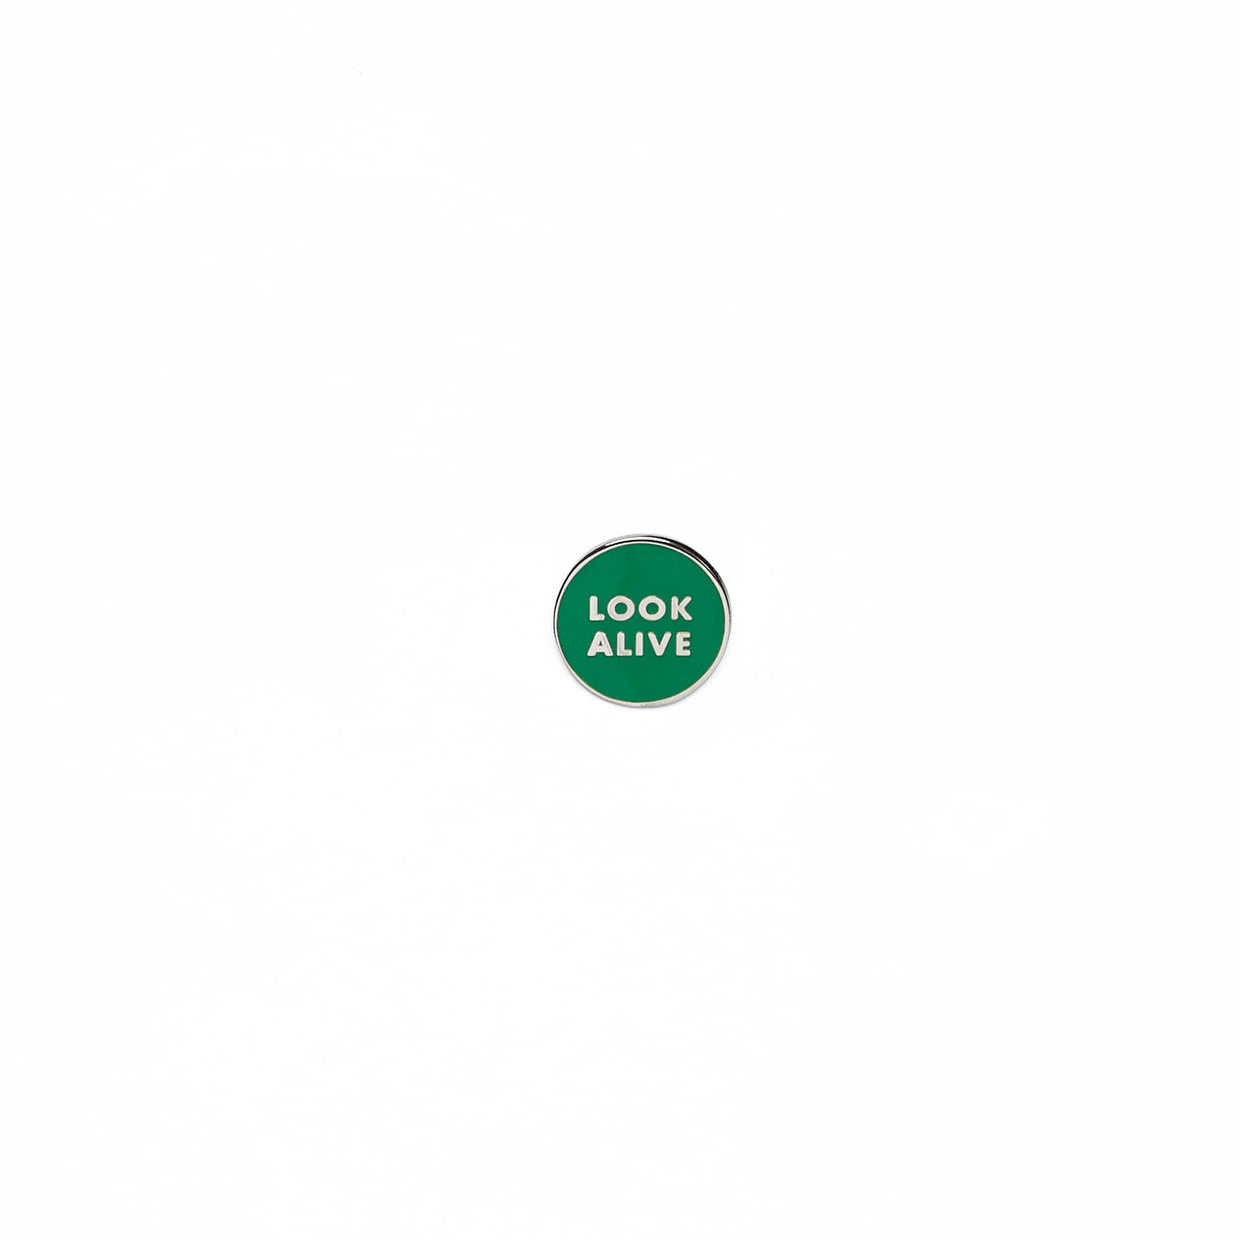 'Look Alive' Enamel Pins